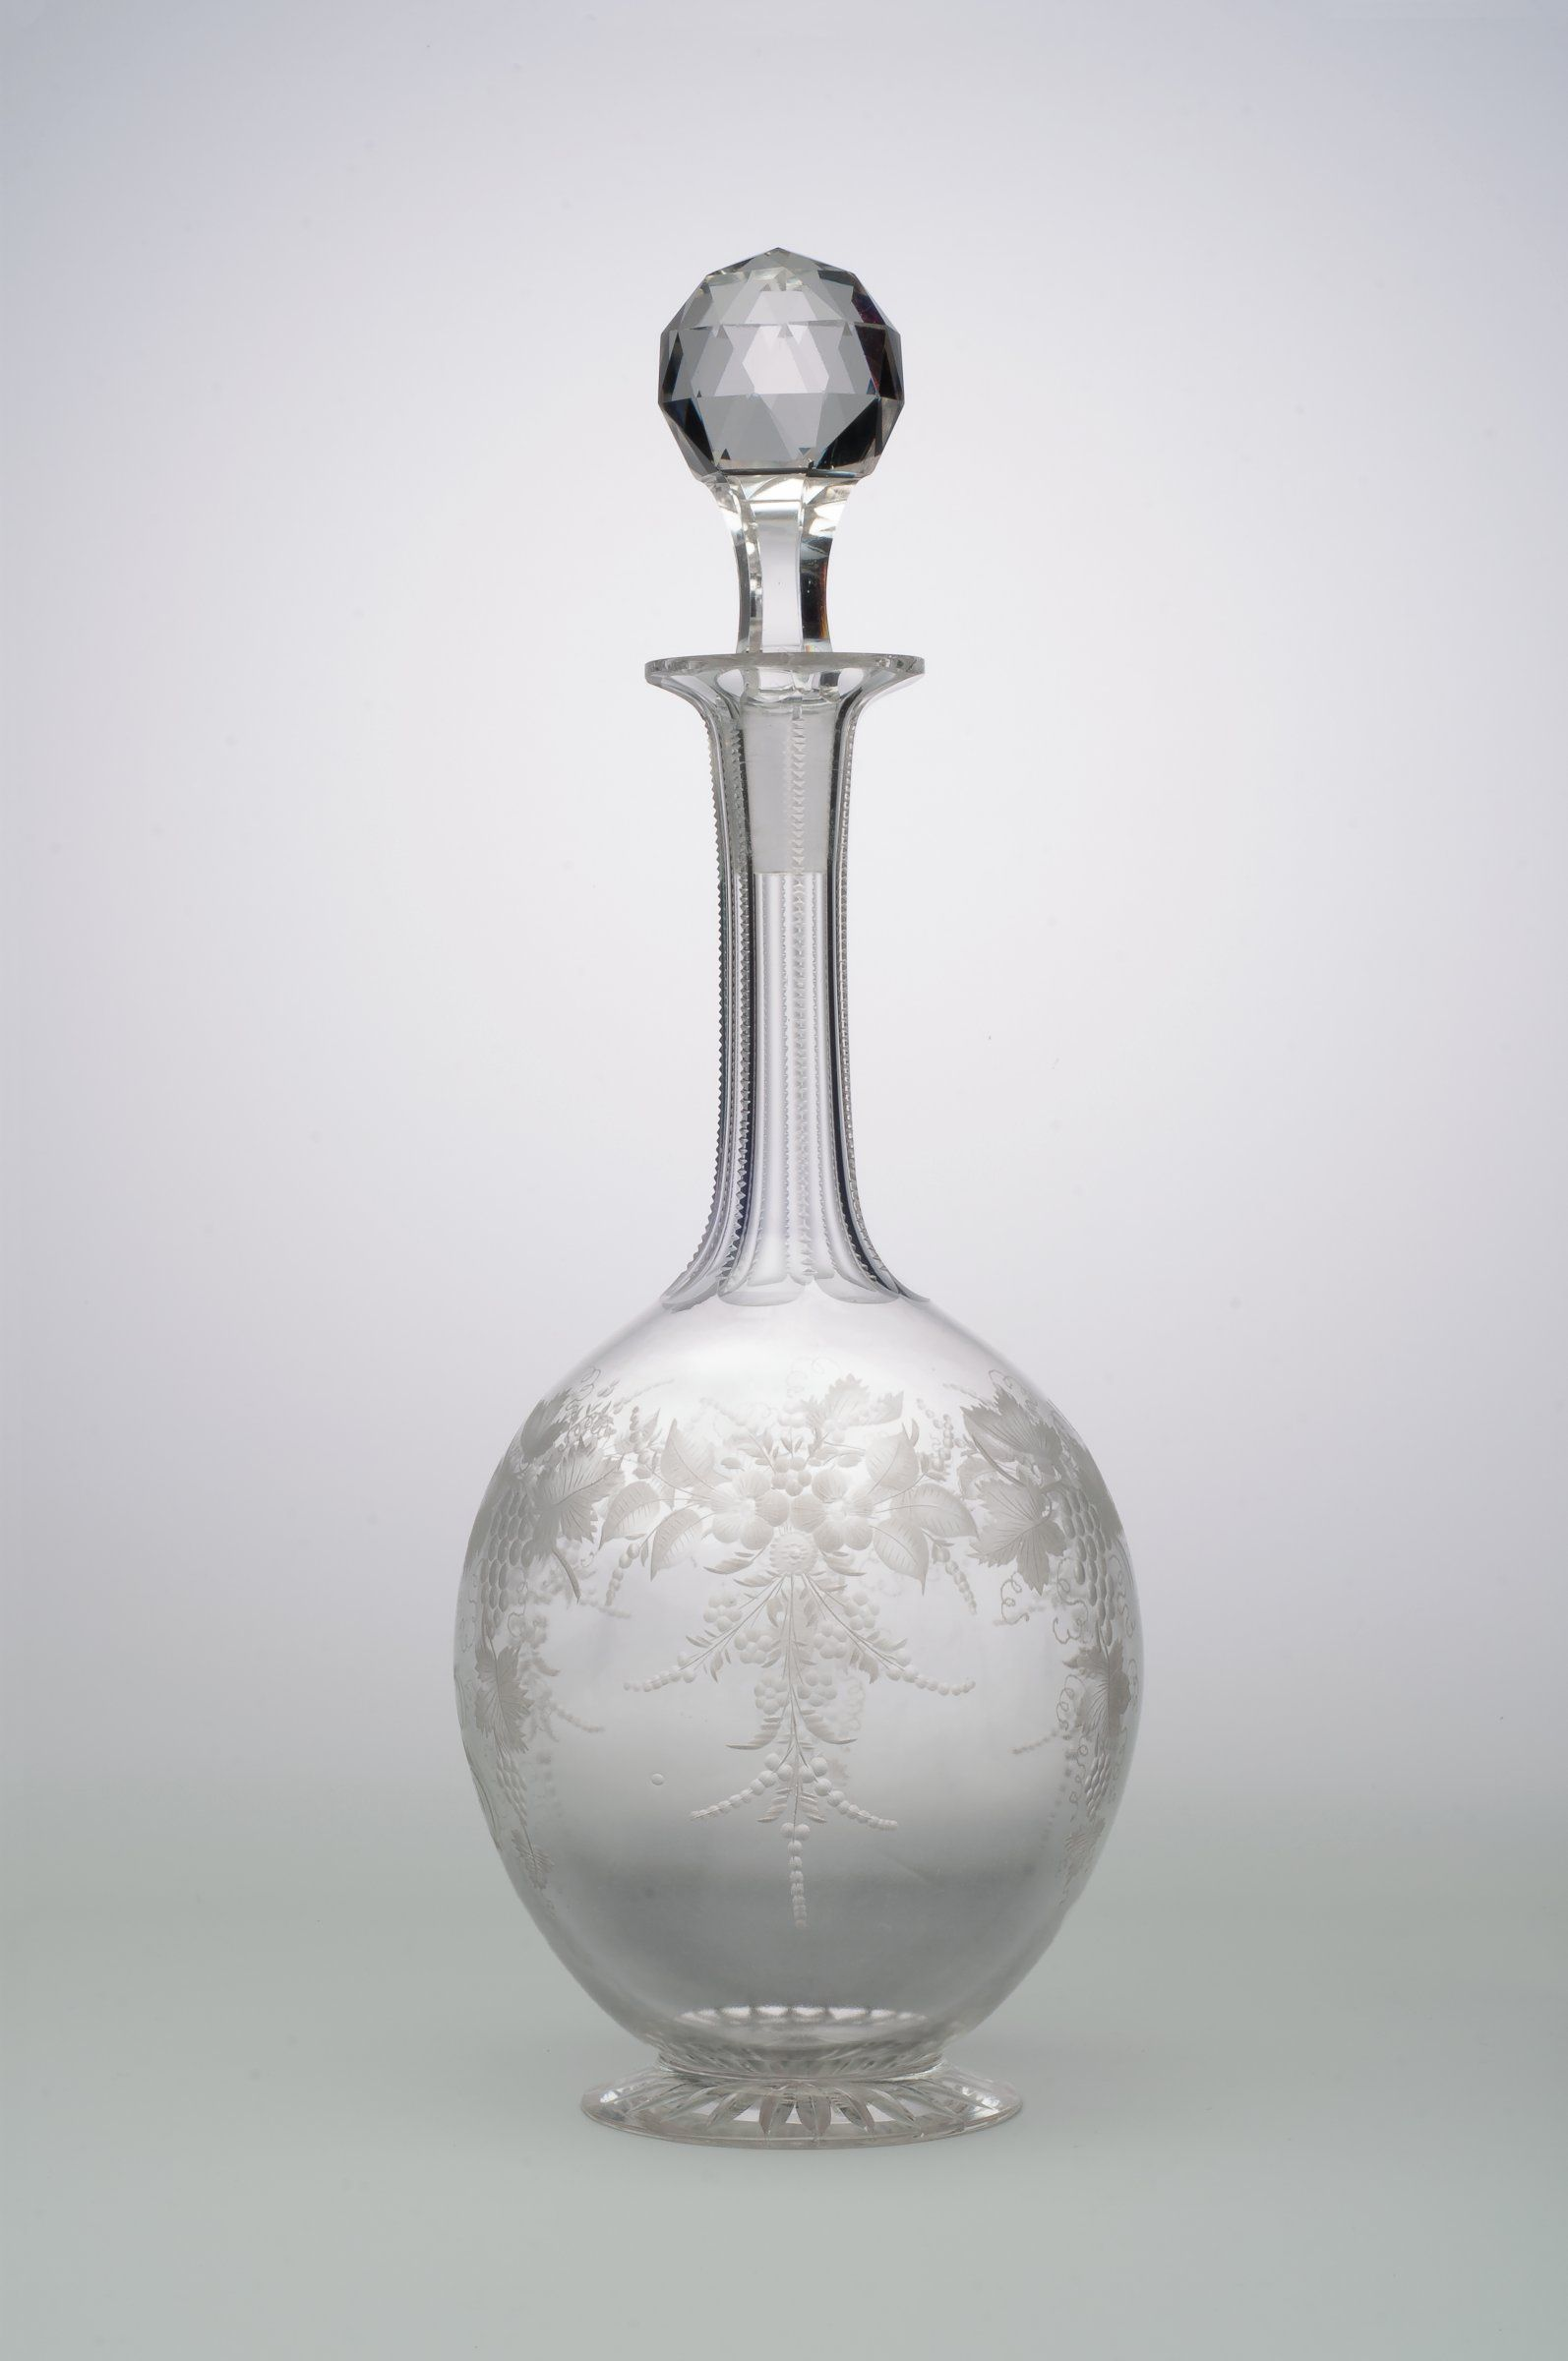 dating antique glass decanters